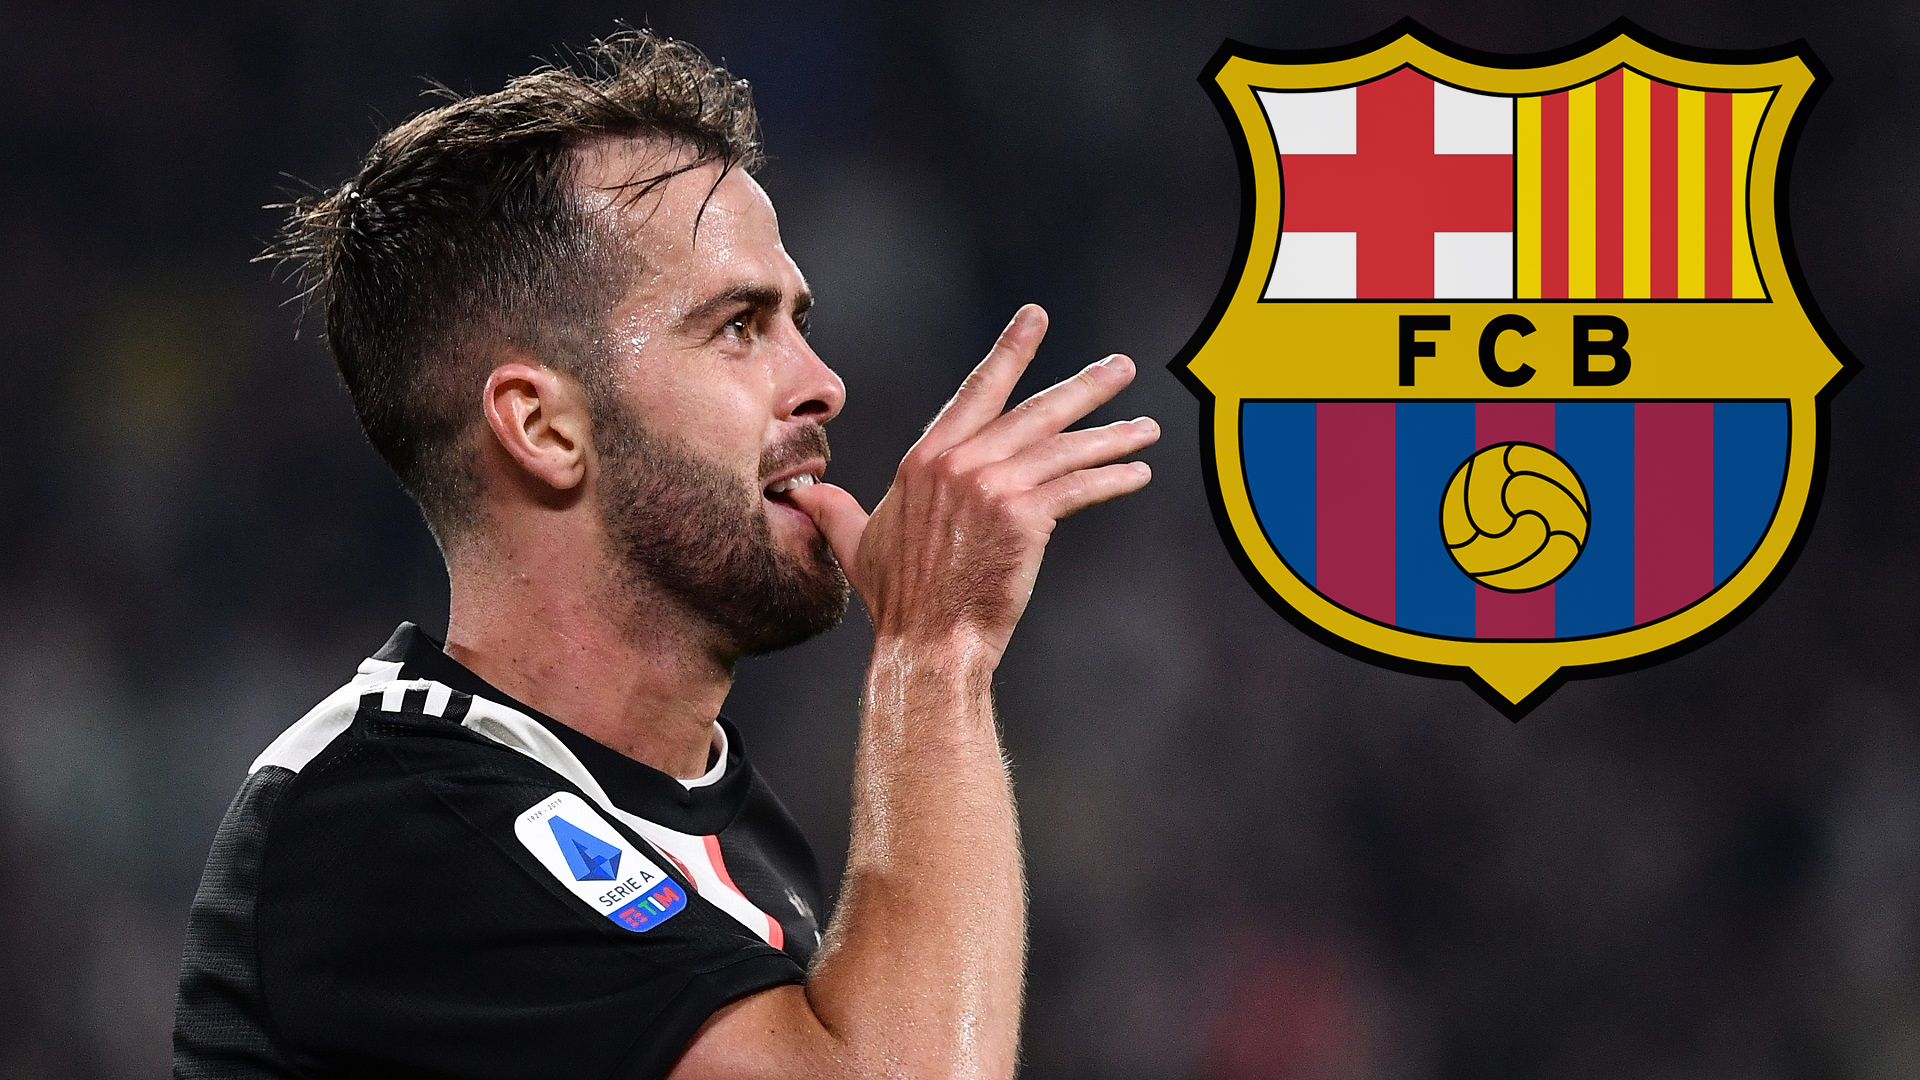 'Pjanic won't be jealous of Messi & Barcelona stars' – Bosnian tipped to spend 'many years' at Camp Nou